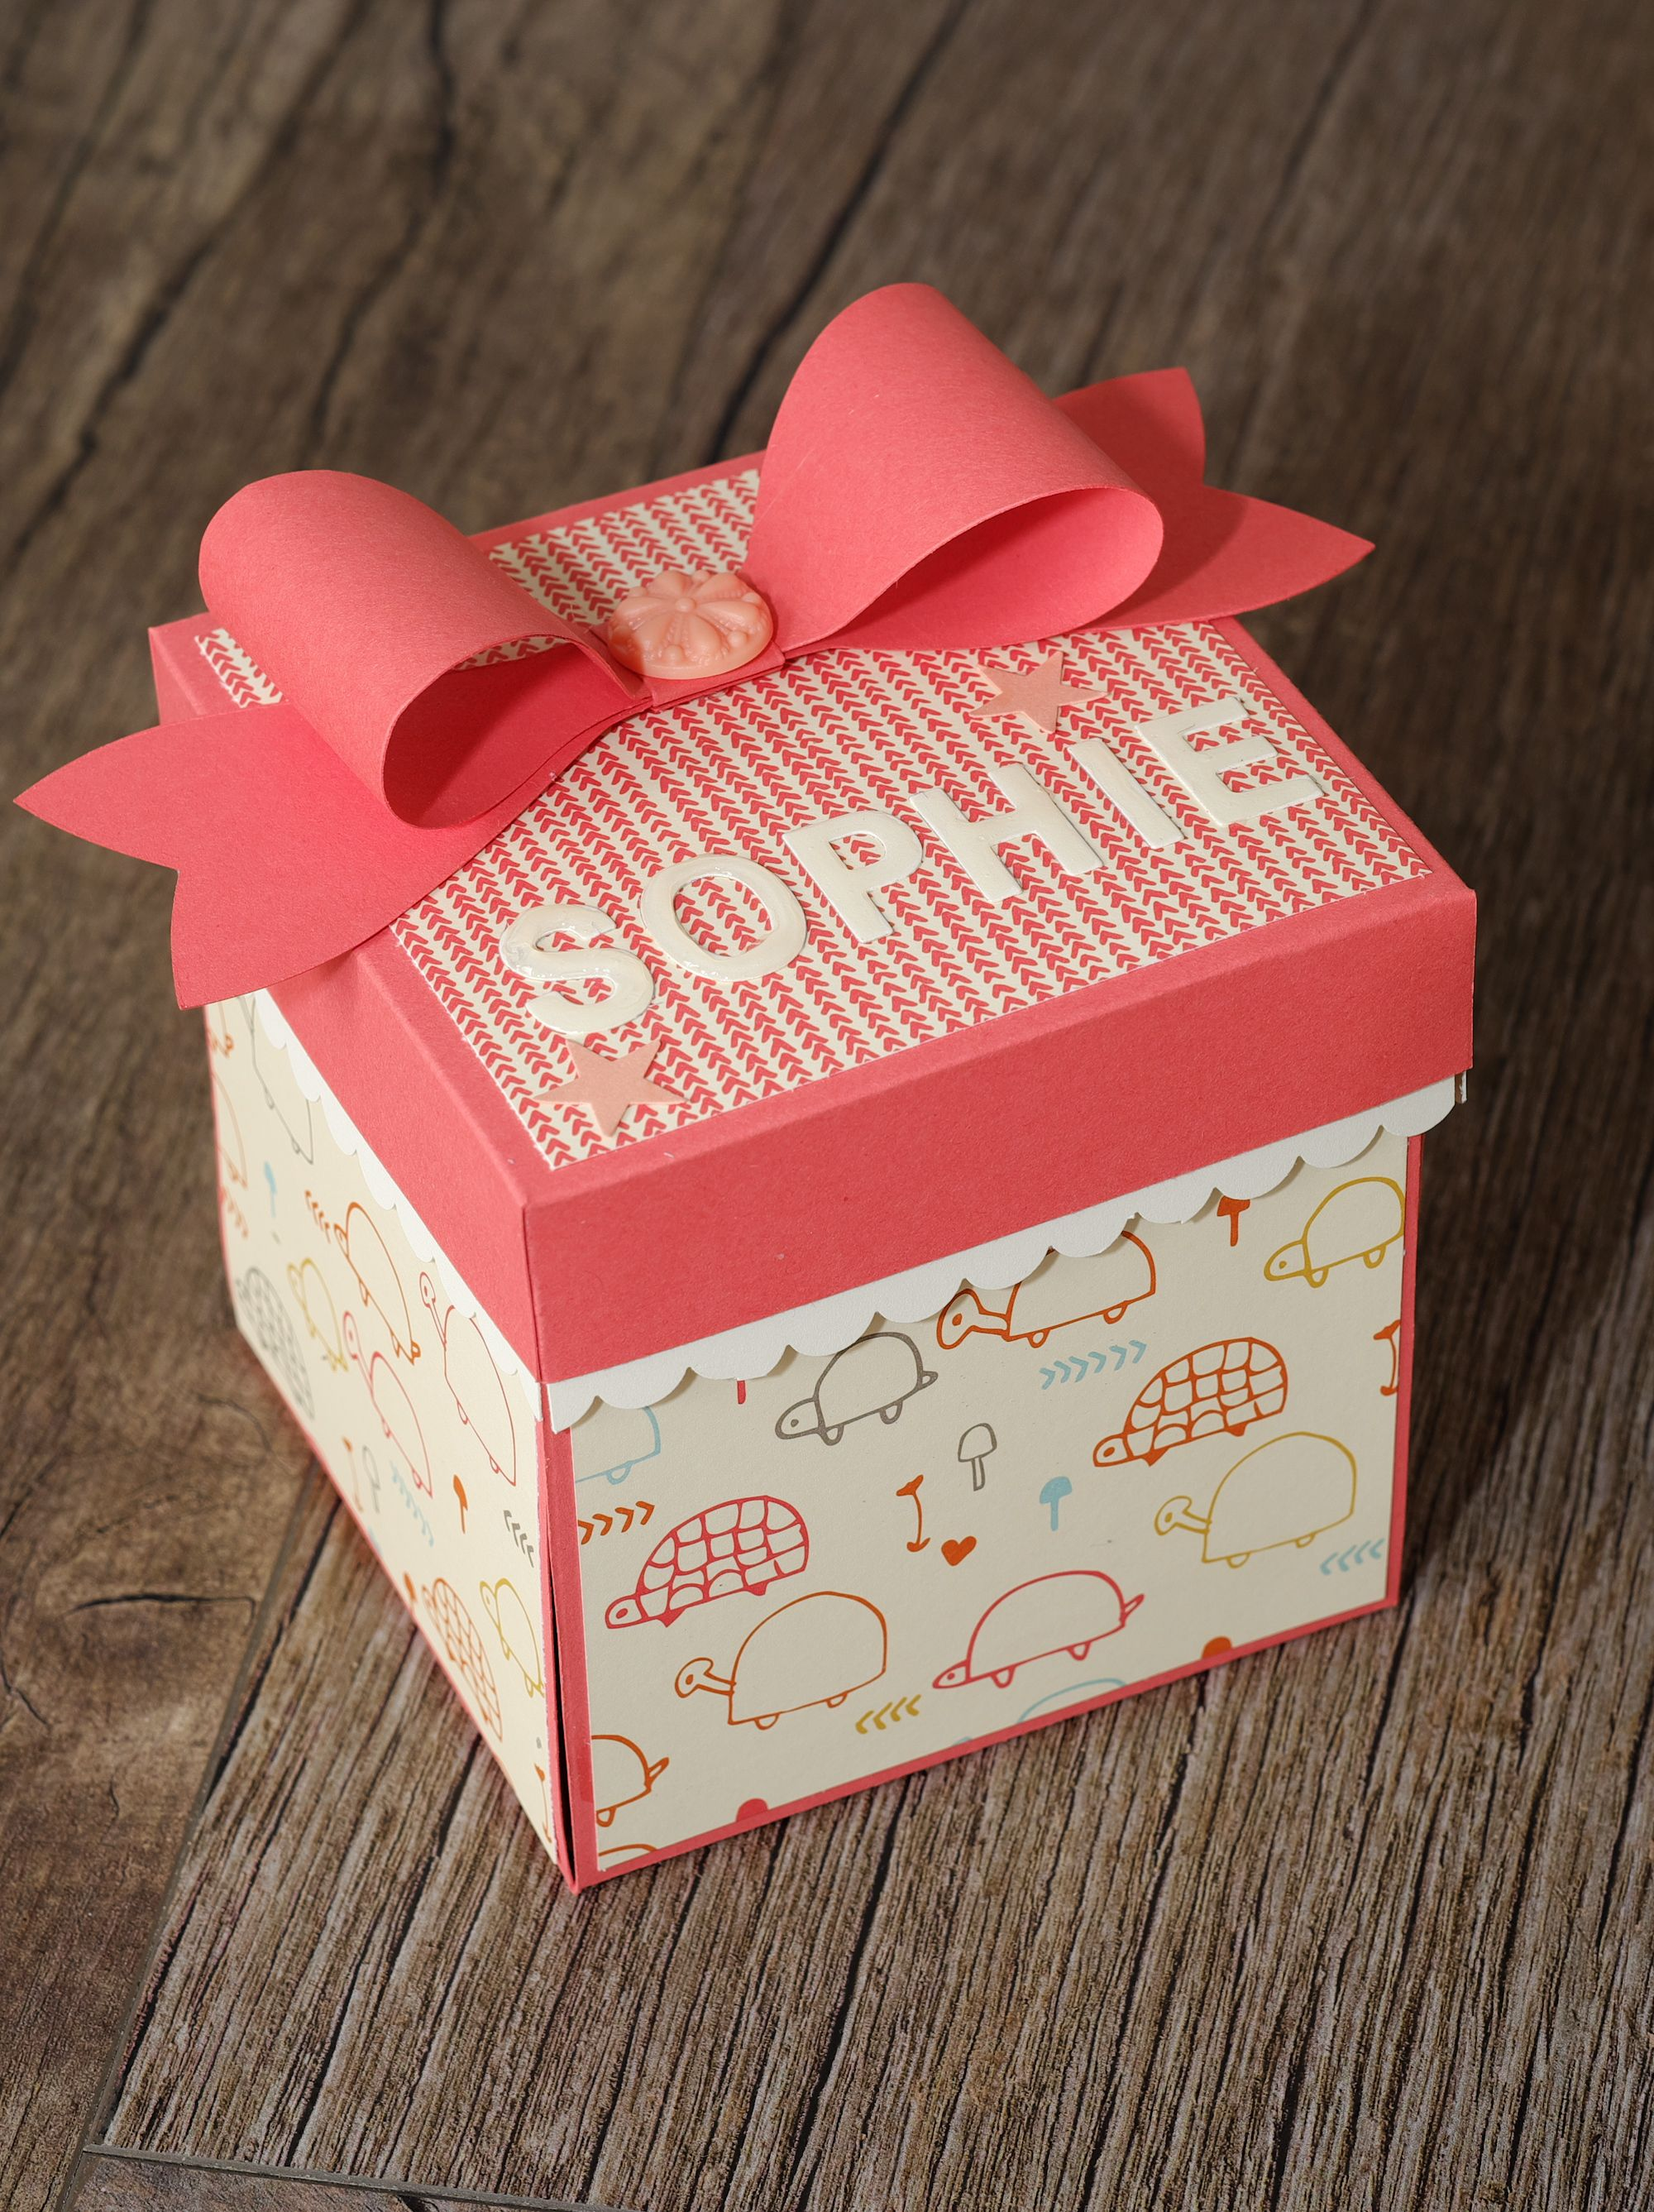 Pin by Angie Ross on gift bags | Pinterest | Box, Exploding boxes ...